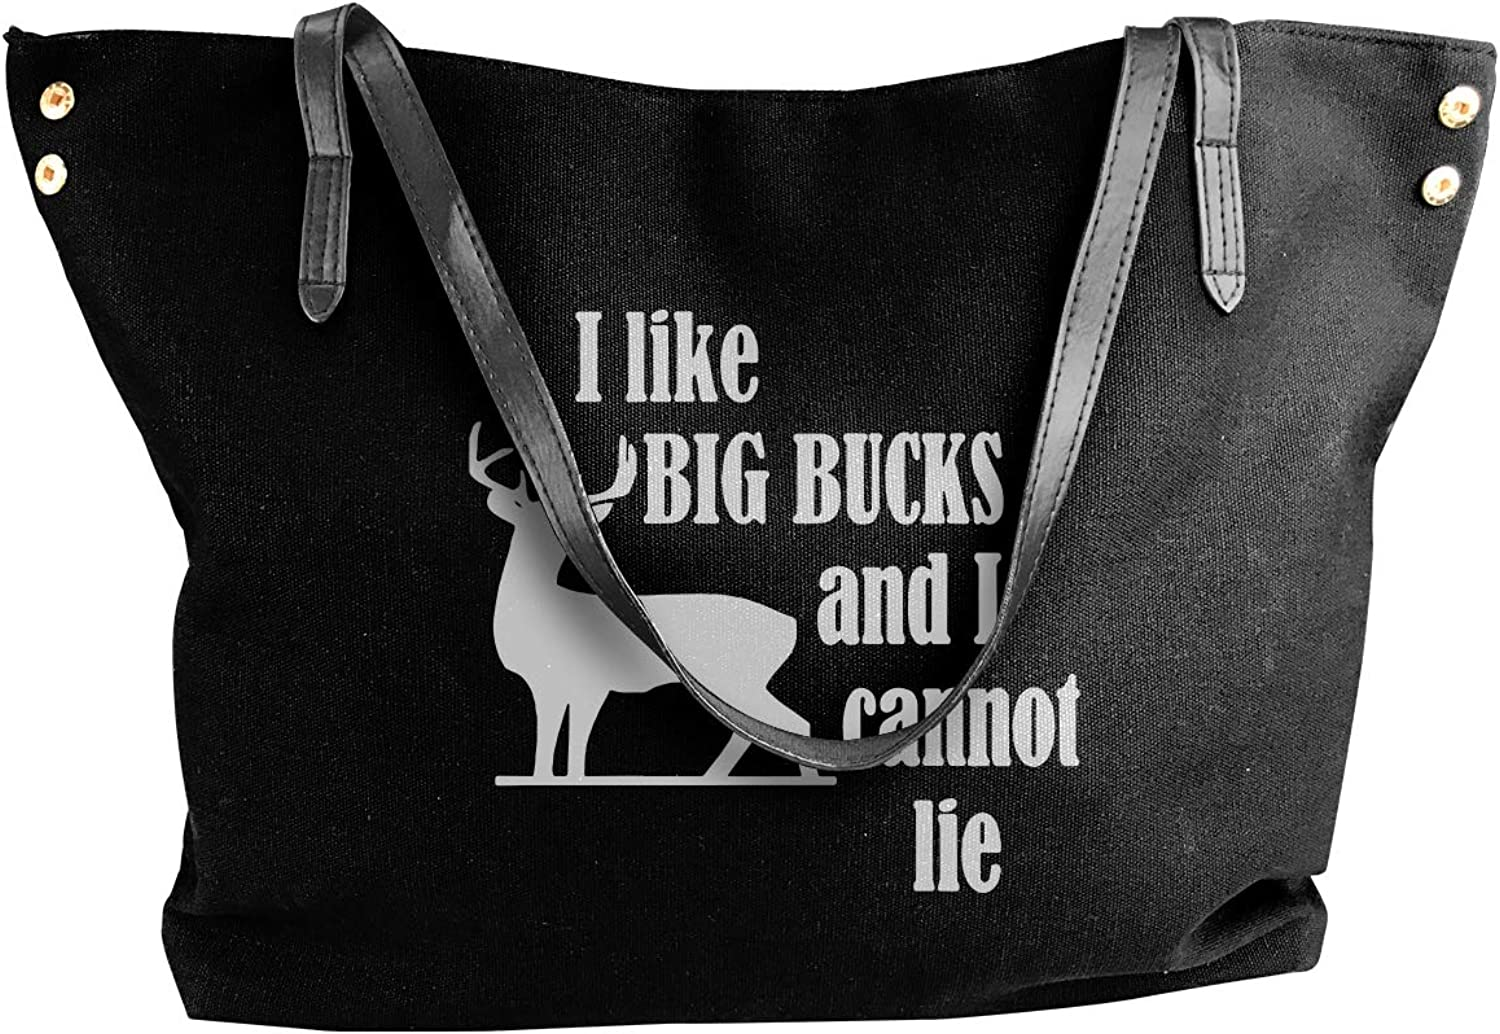 I Like Big Bucks And I Cannot Lie Women'S Casual Canvas Handbag For School Shoulder Tote